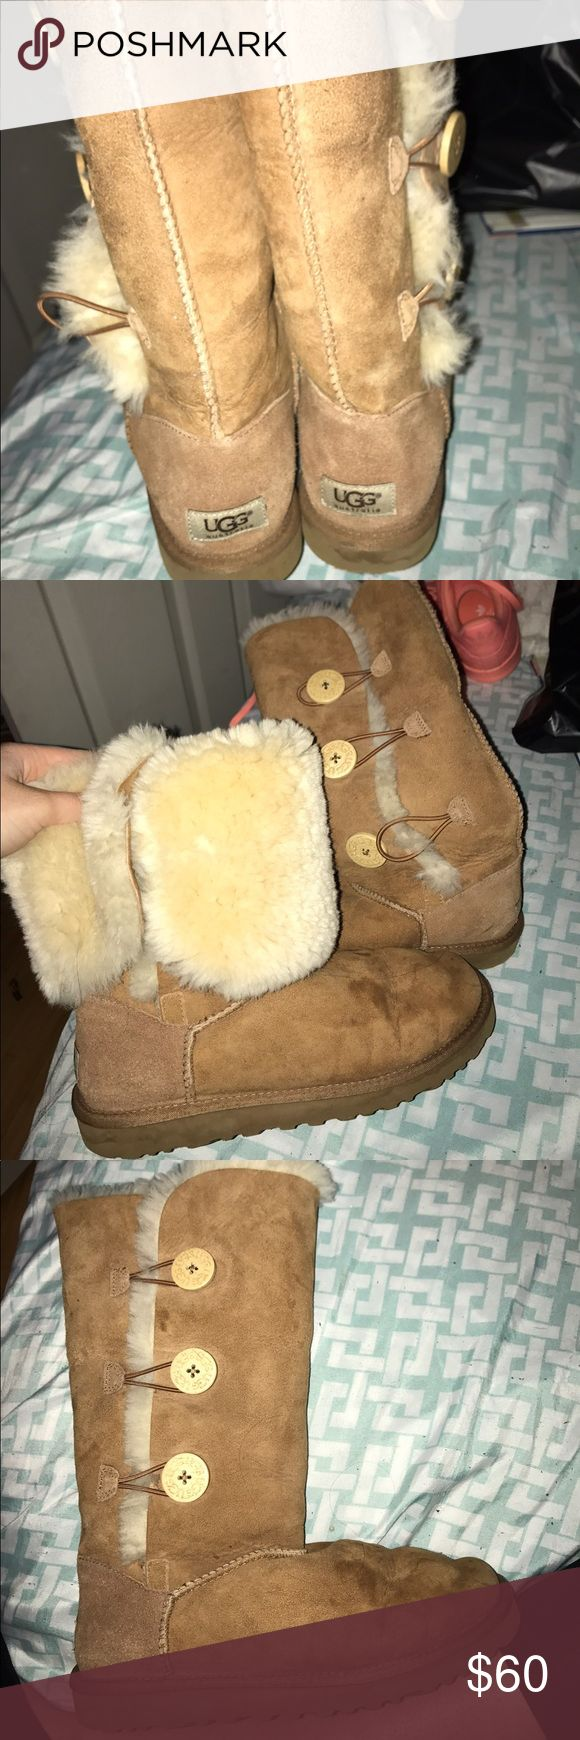 tall Ugg chestnut 3 buttoned boot Chestnut tall Ugg boots with 3 button detail on side. Fur intact. Worn a couple of times- some damage to the exterior. sold as is UGG Shoes Winter & Rain Boots